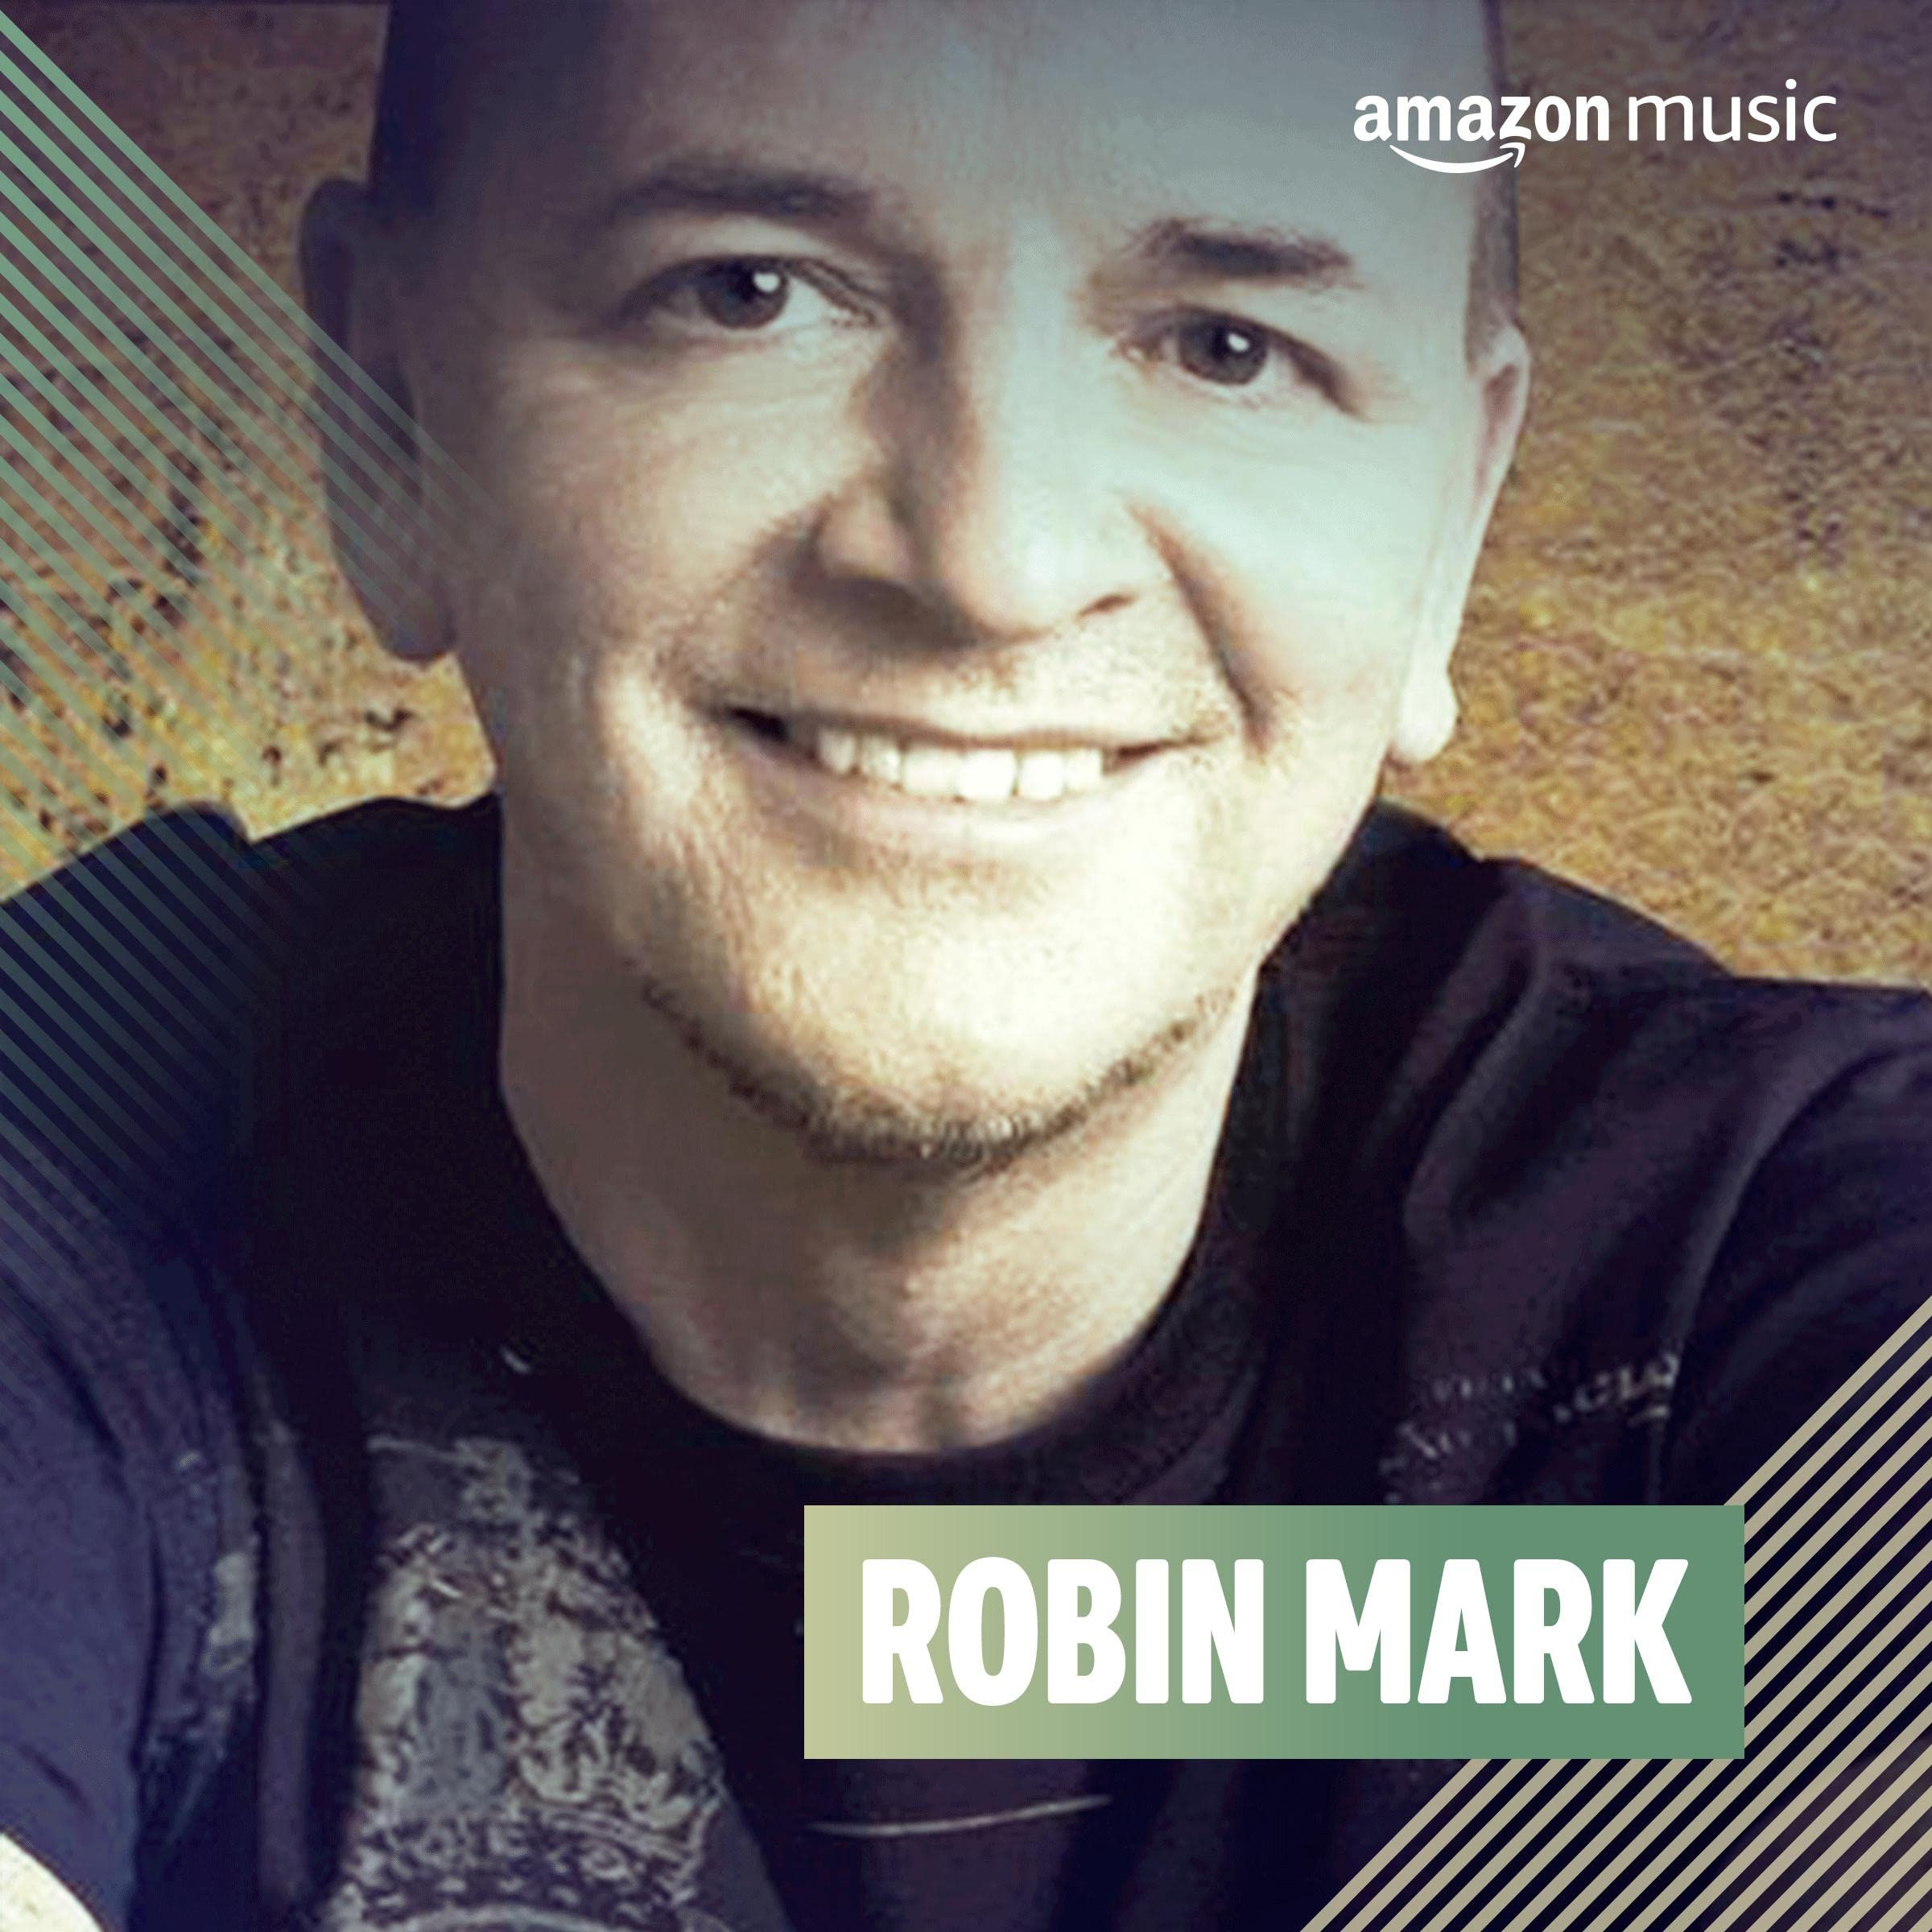 Robin Mark